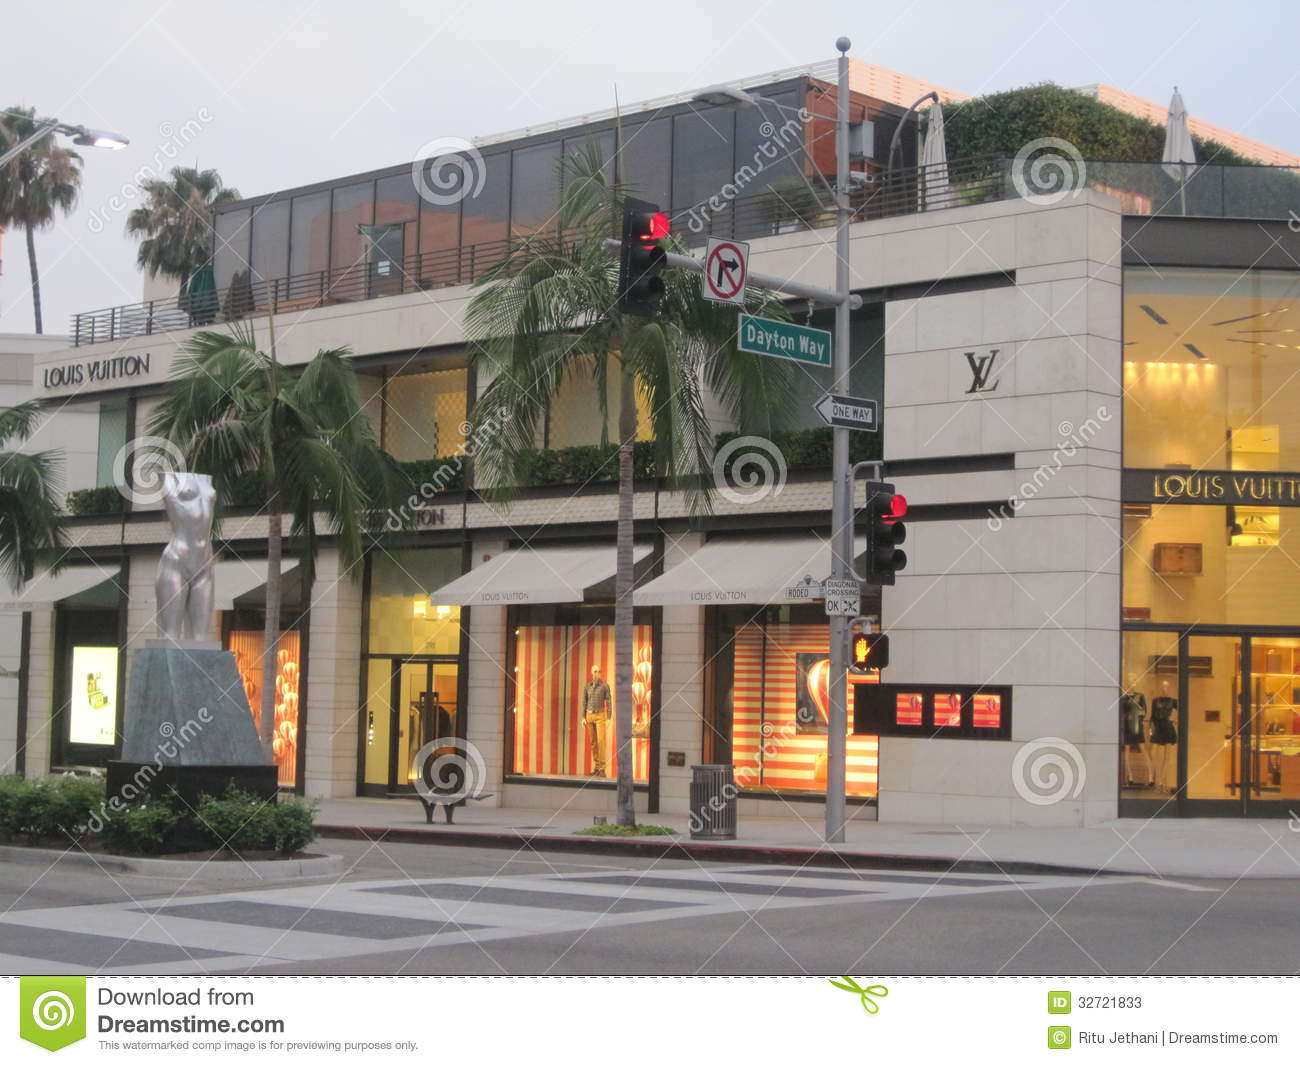 Louis Vuitton store at Rodeo Drive in Beverly Hills